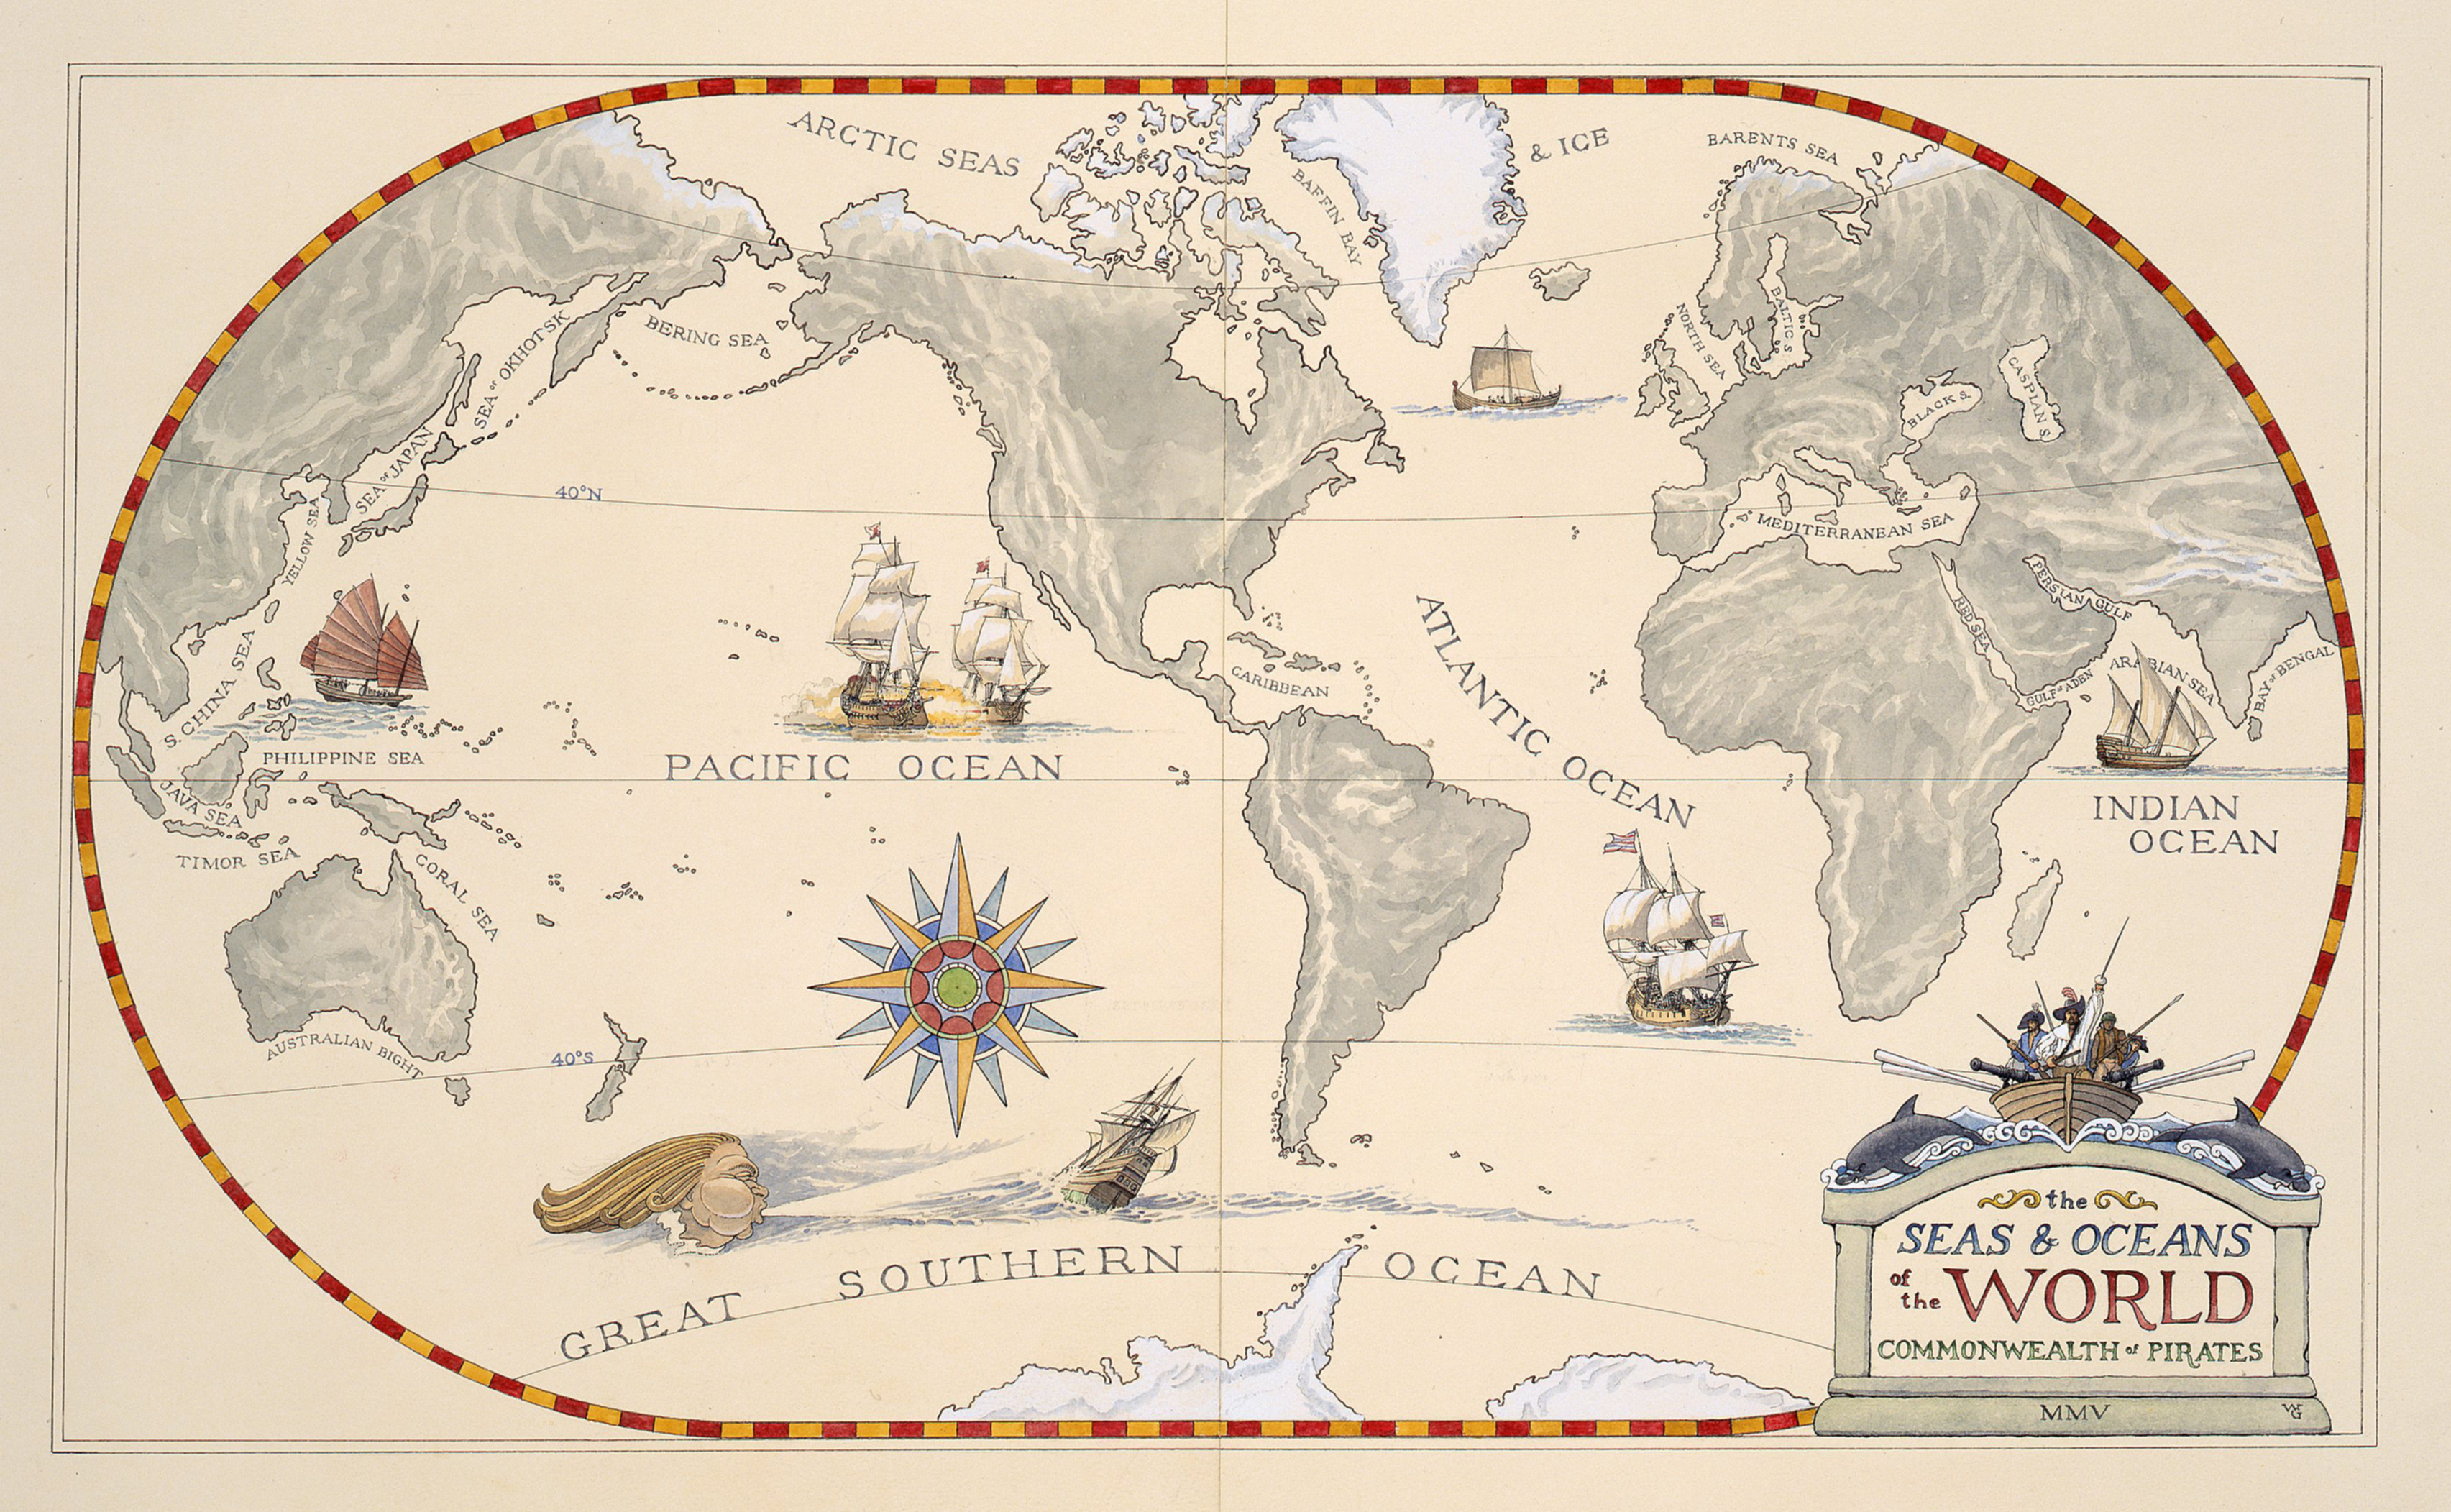 Pirate World Map.The Seas And Oceans Of The World William Gilkerson